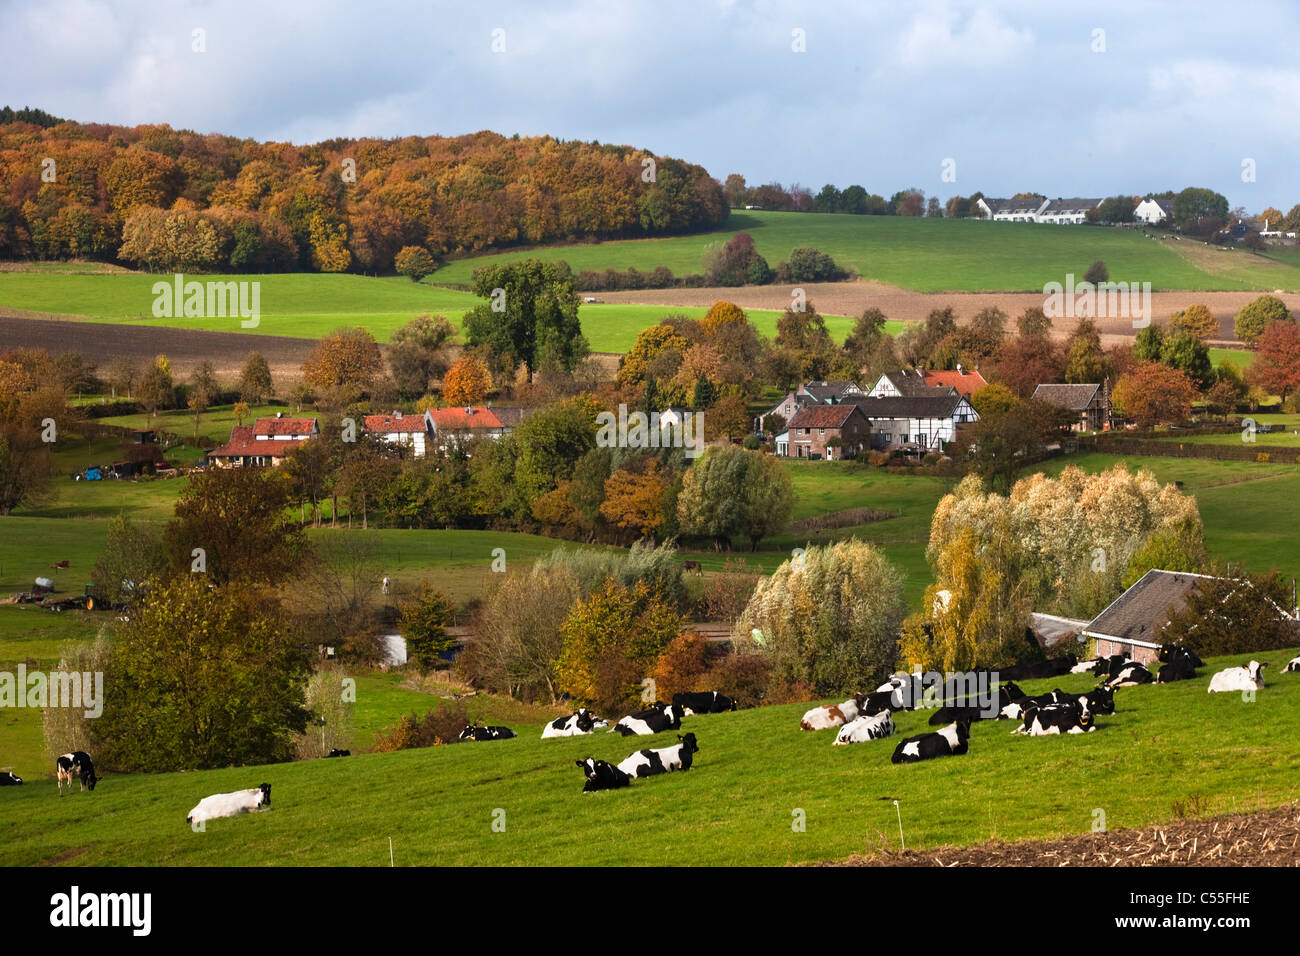 The Netherlands, Epen, Cows in front of of frame houses. - Stock Image